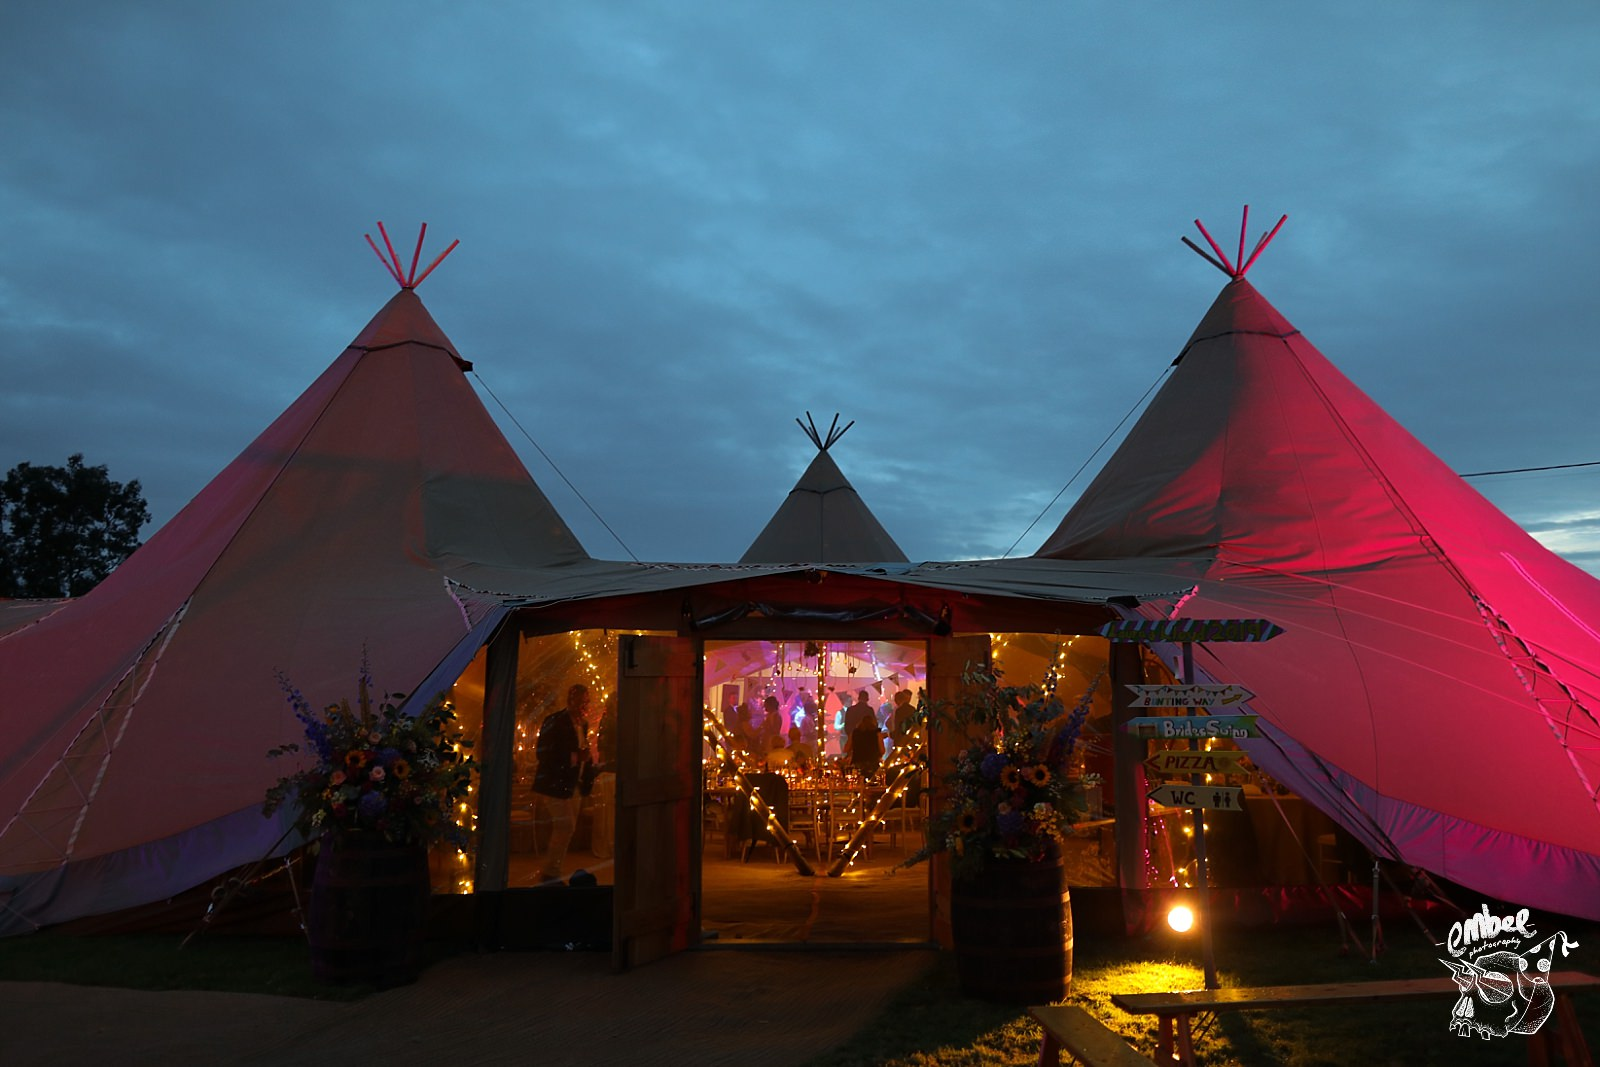 wedding in tipi at night